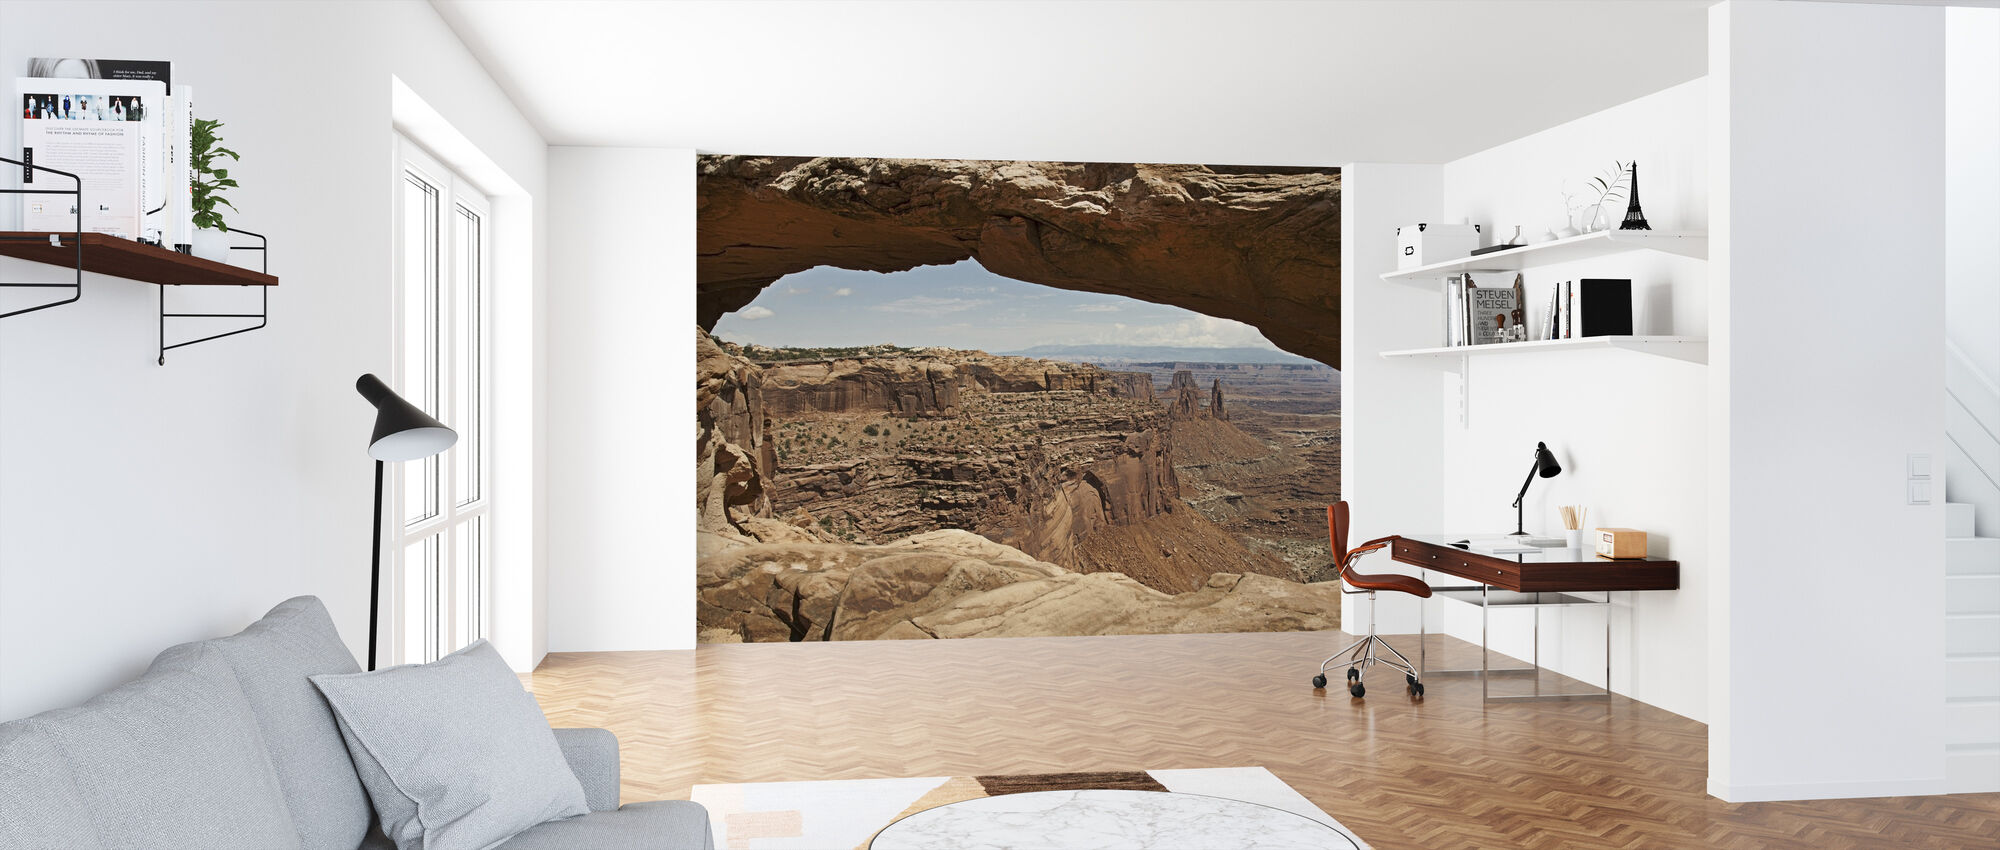 Mesa Arch - Wallpaper - Office